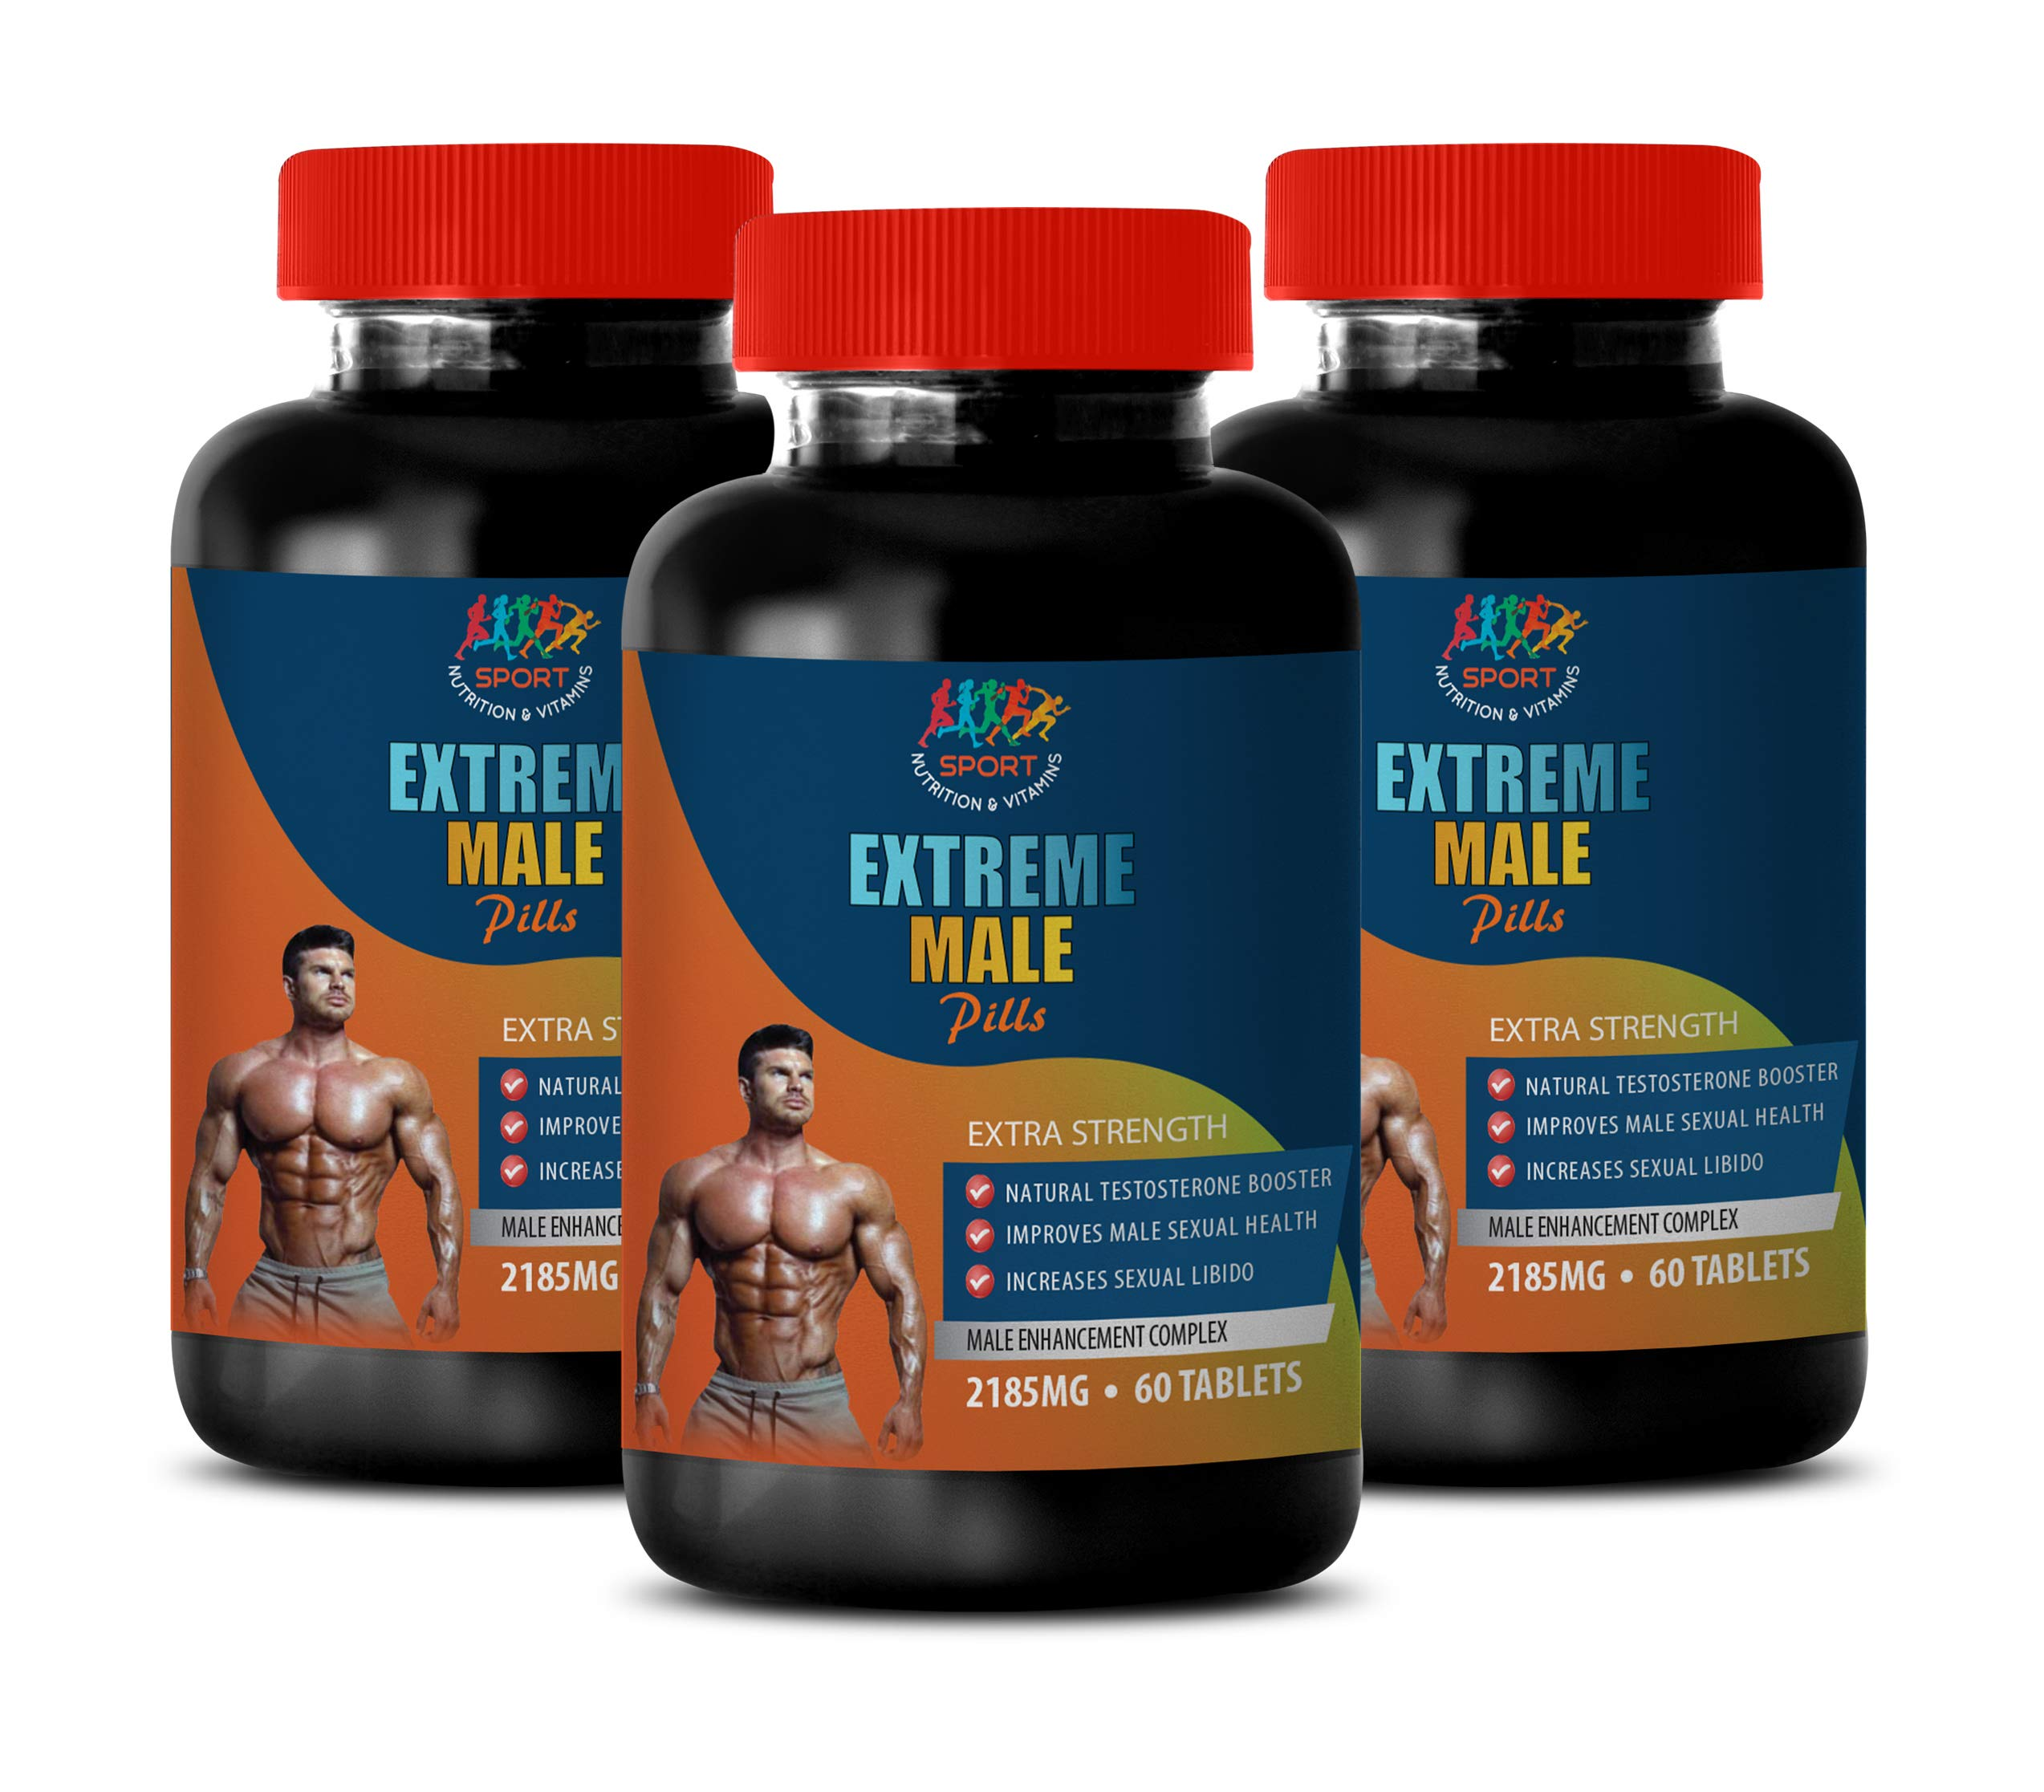 libido Booster for Men Sex - Extreme Male Pills - Extra Strength - Muira puama Herbal Supplements - 3 Bottles 180 Tablets